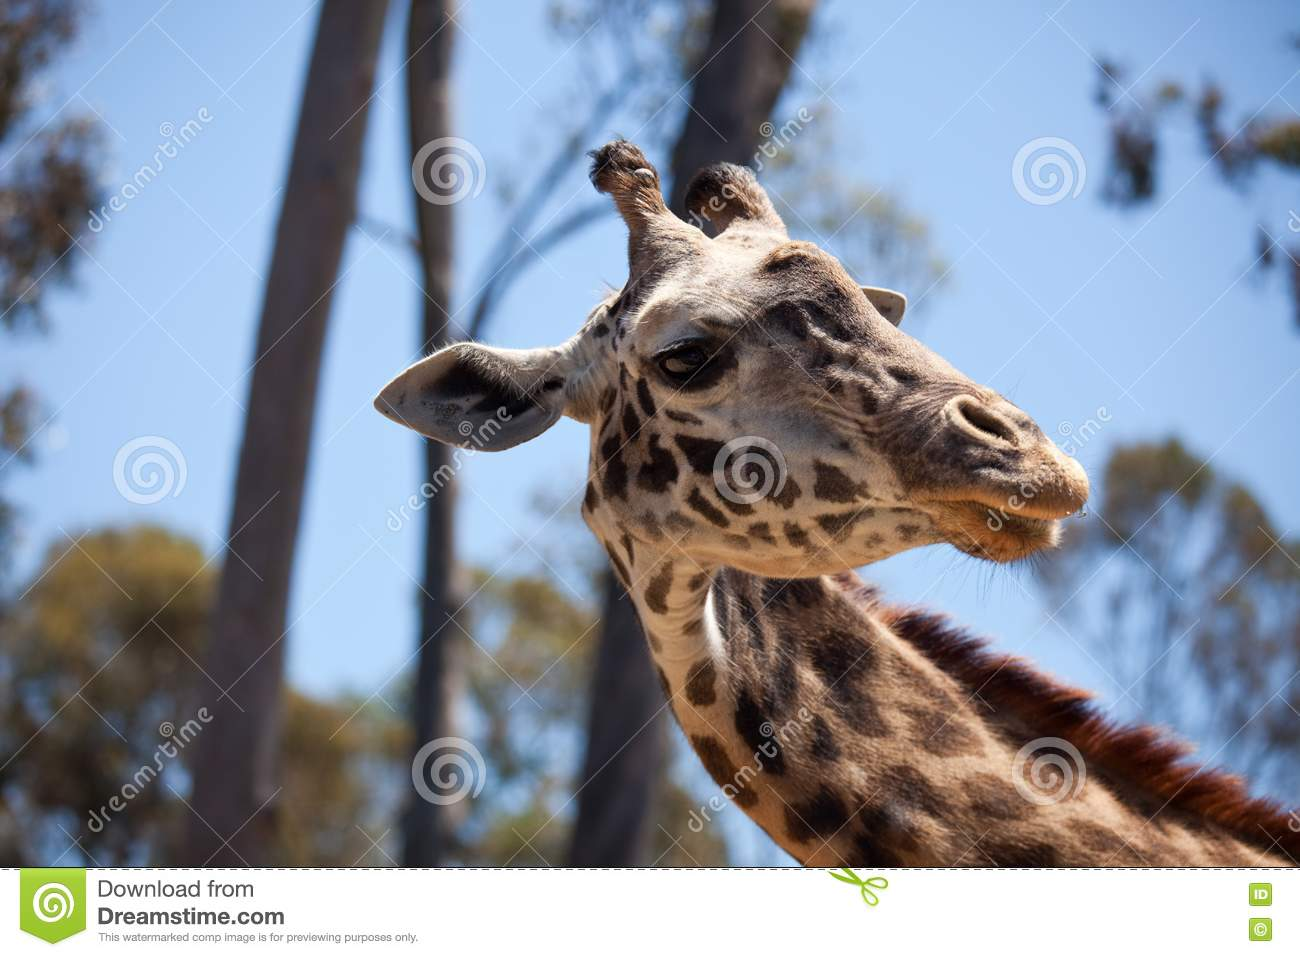 Giraffe head close up - photo#18